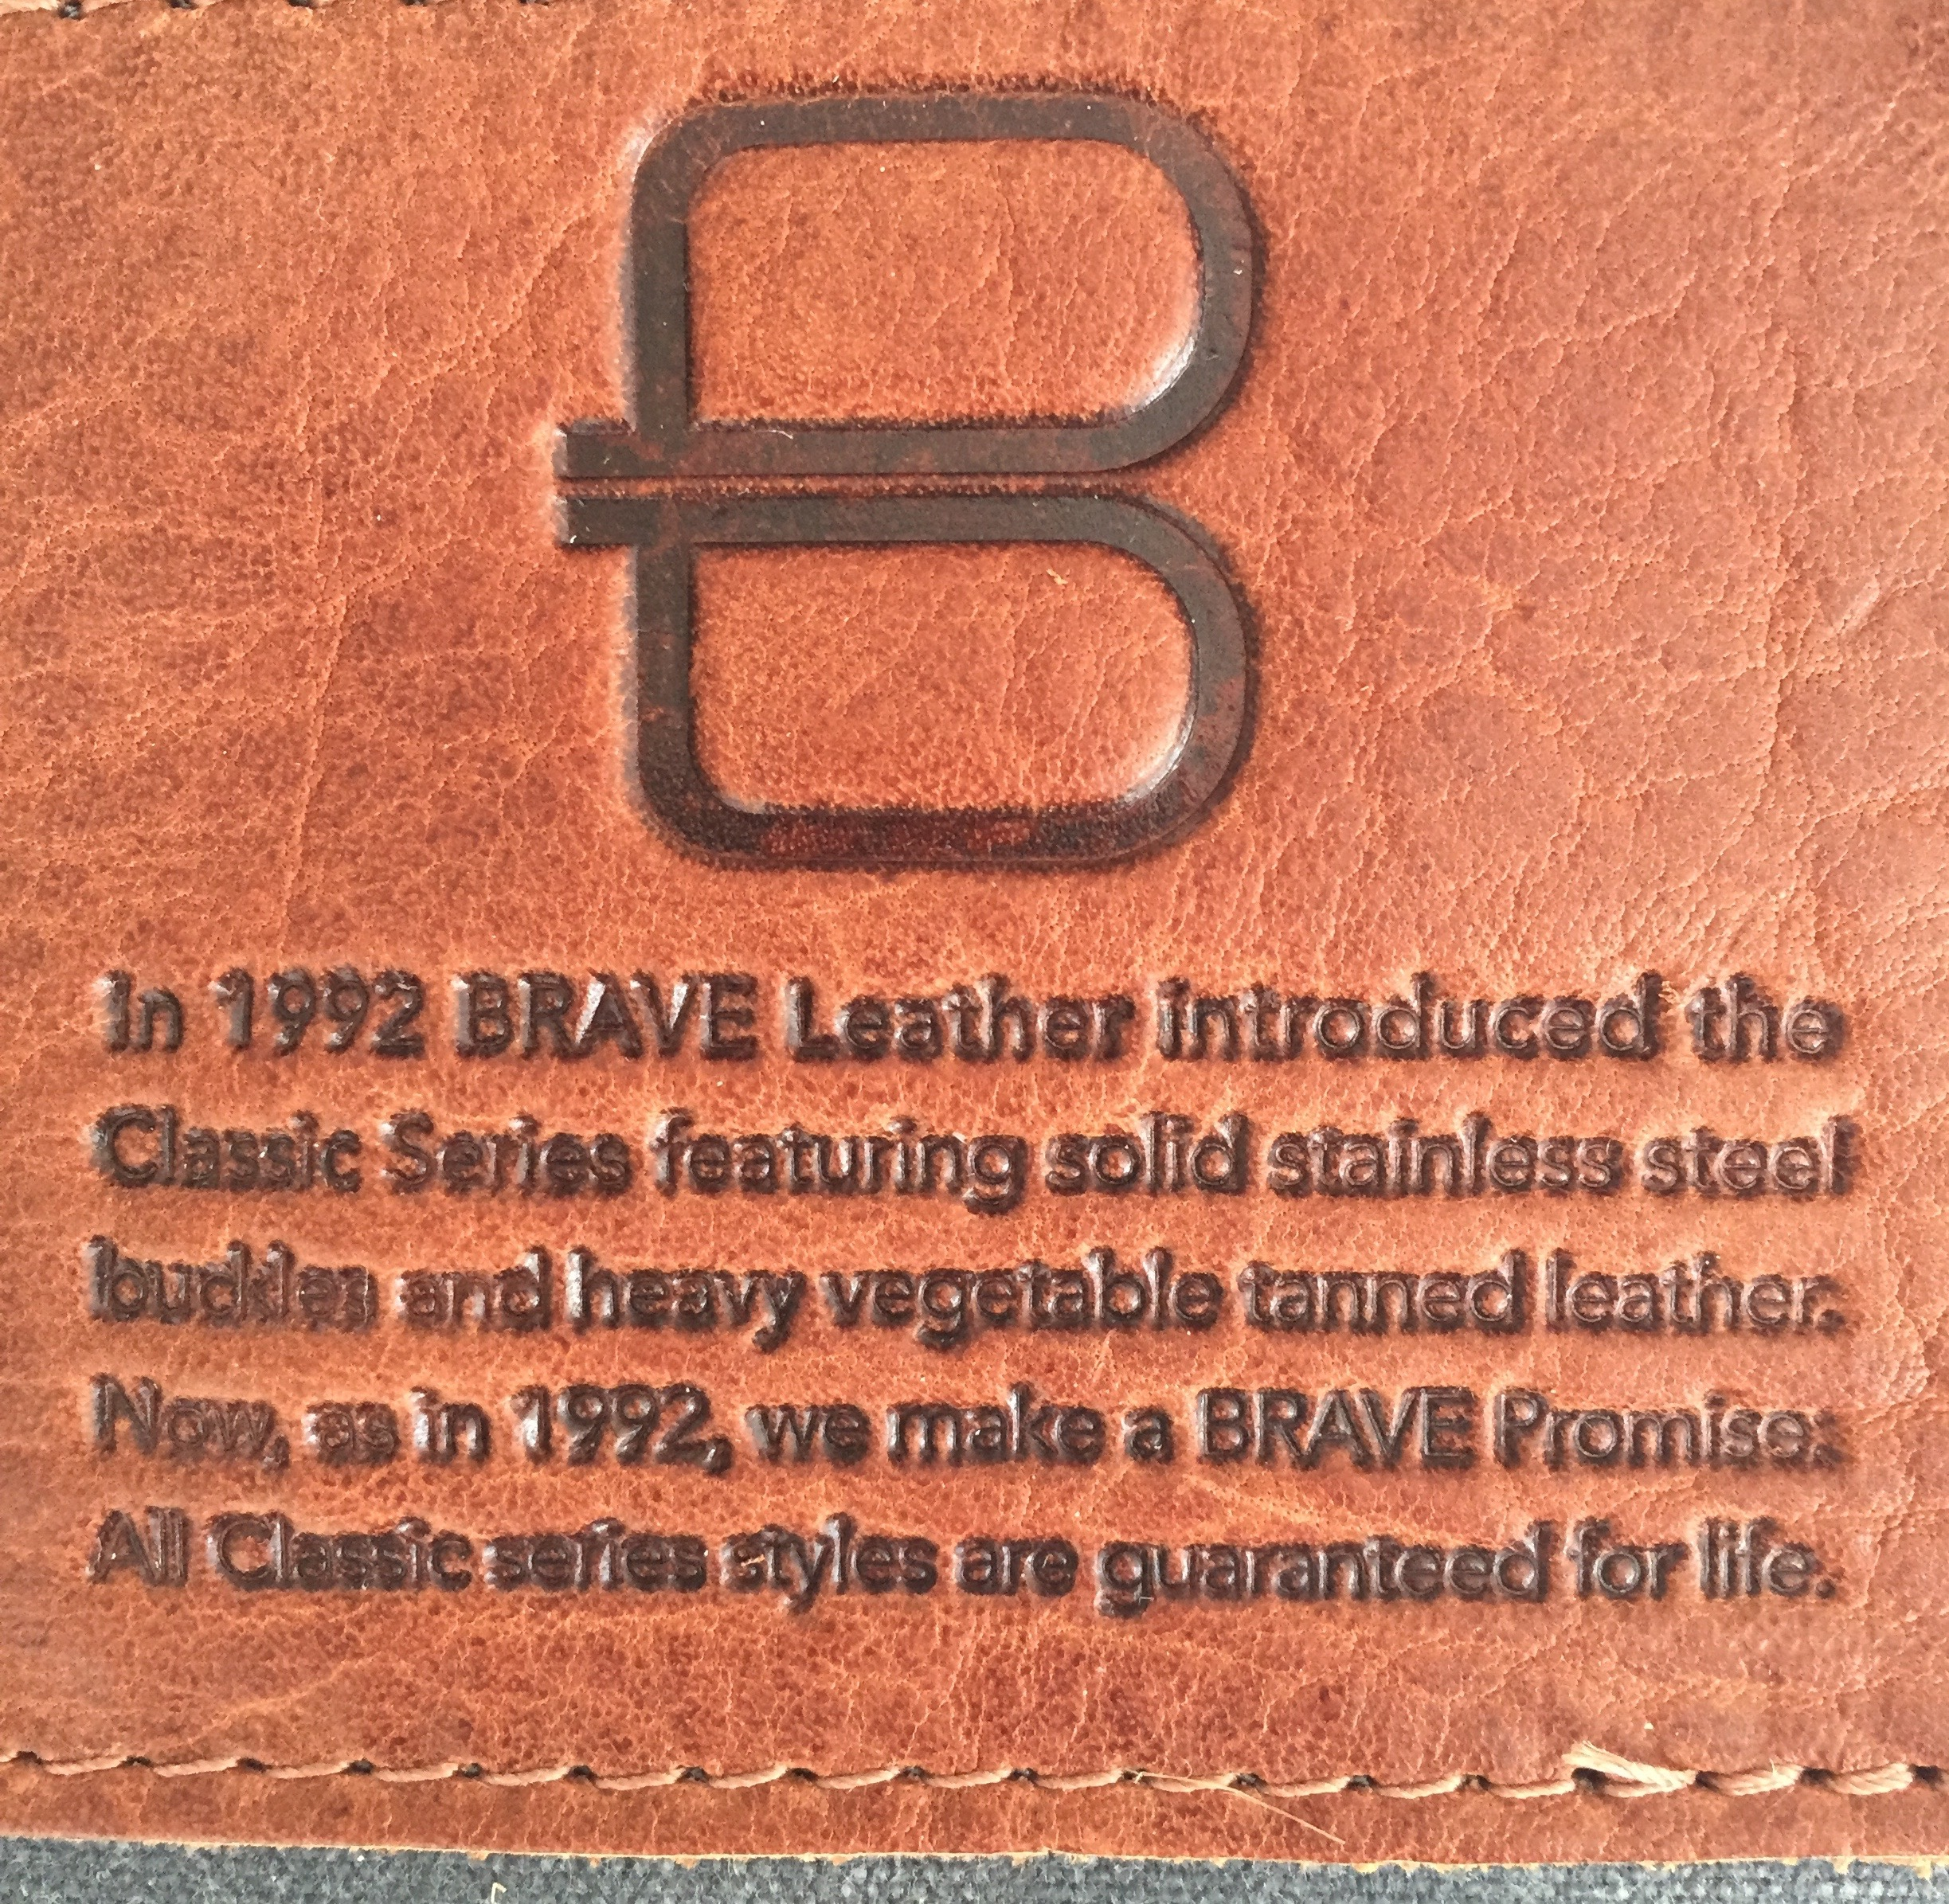 11a. Bag is embossed with the lifetime guarantee for the Classic.